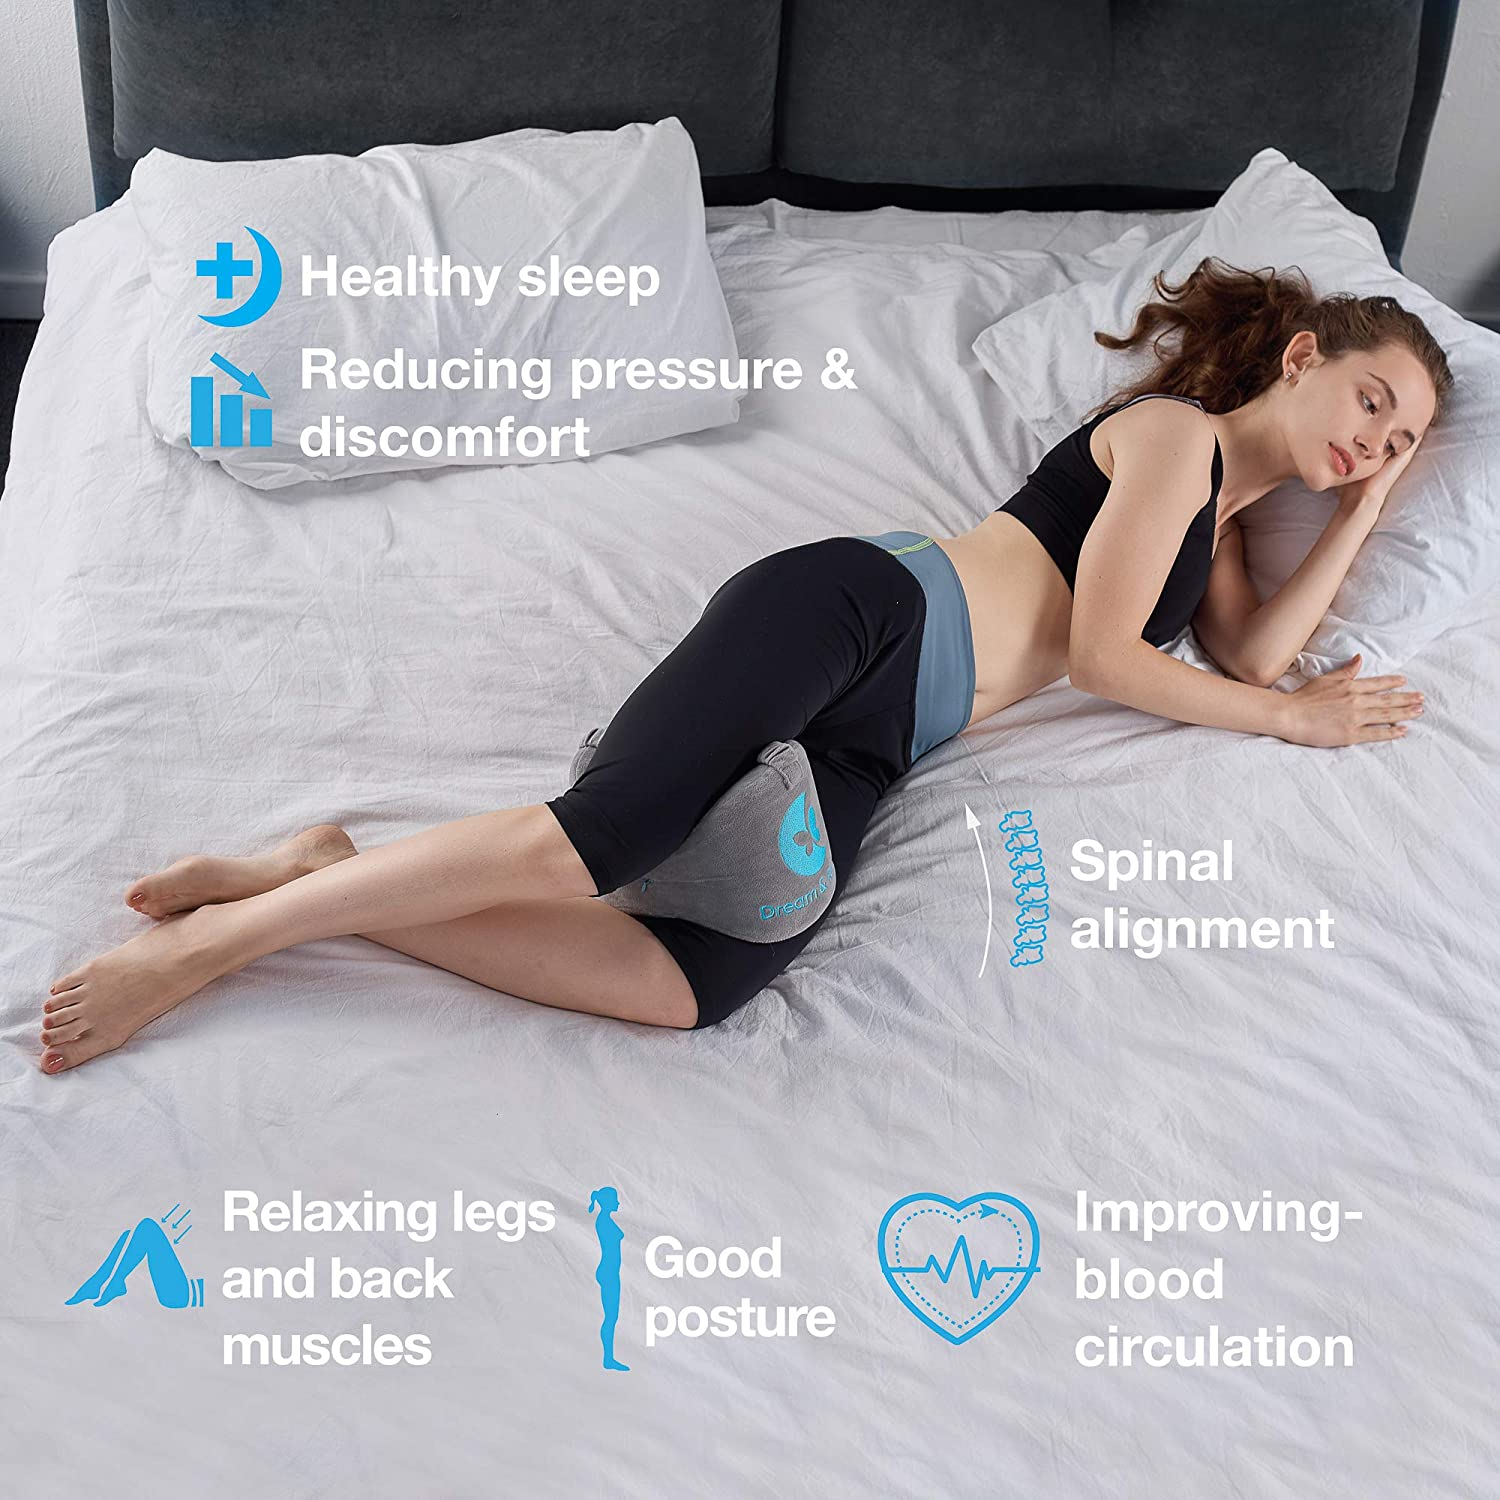 Leg Pillow Memory Foam Knee Pillow for Side Sleepers for Between Legs Dream Hip Pillow Knee Pillows for Sleeping Leg Pillows for Sleeping on Side SI Joint Sciatica Orthopedic Knee Pillow for Back Pain: Kitchen & Dining